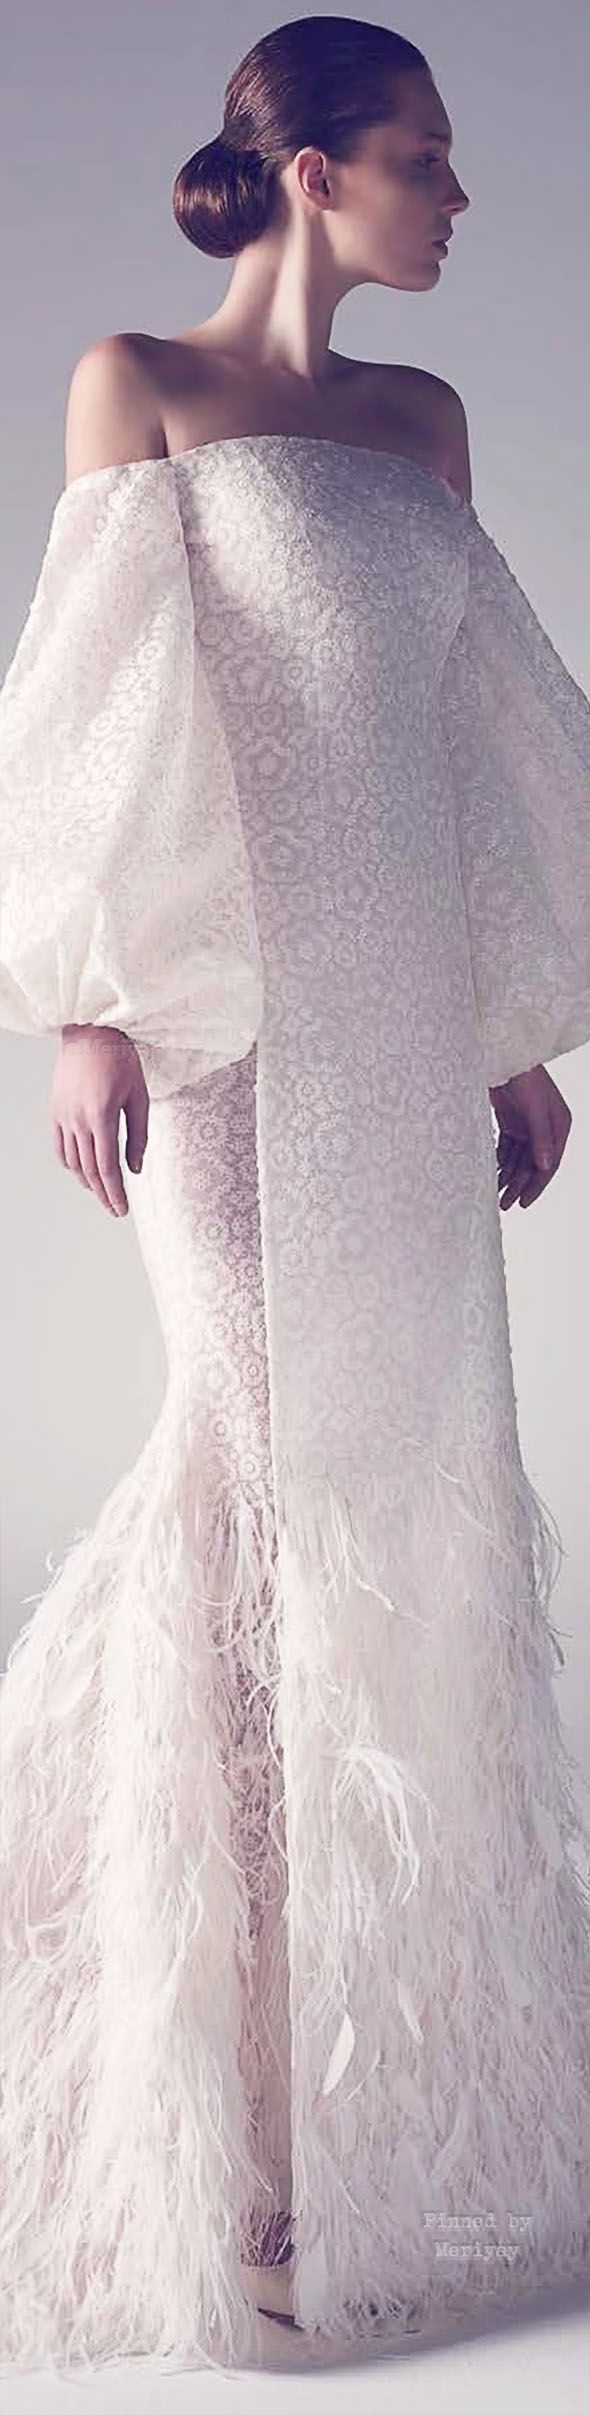 Glam Gowns / karen cox. Ashi Haute Couture                                            Spring Summer 2015